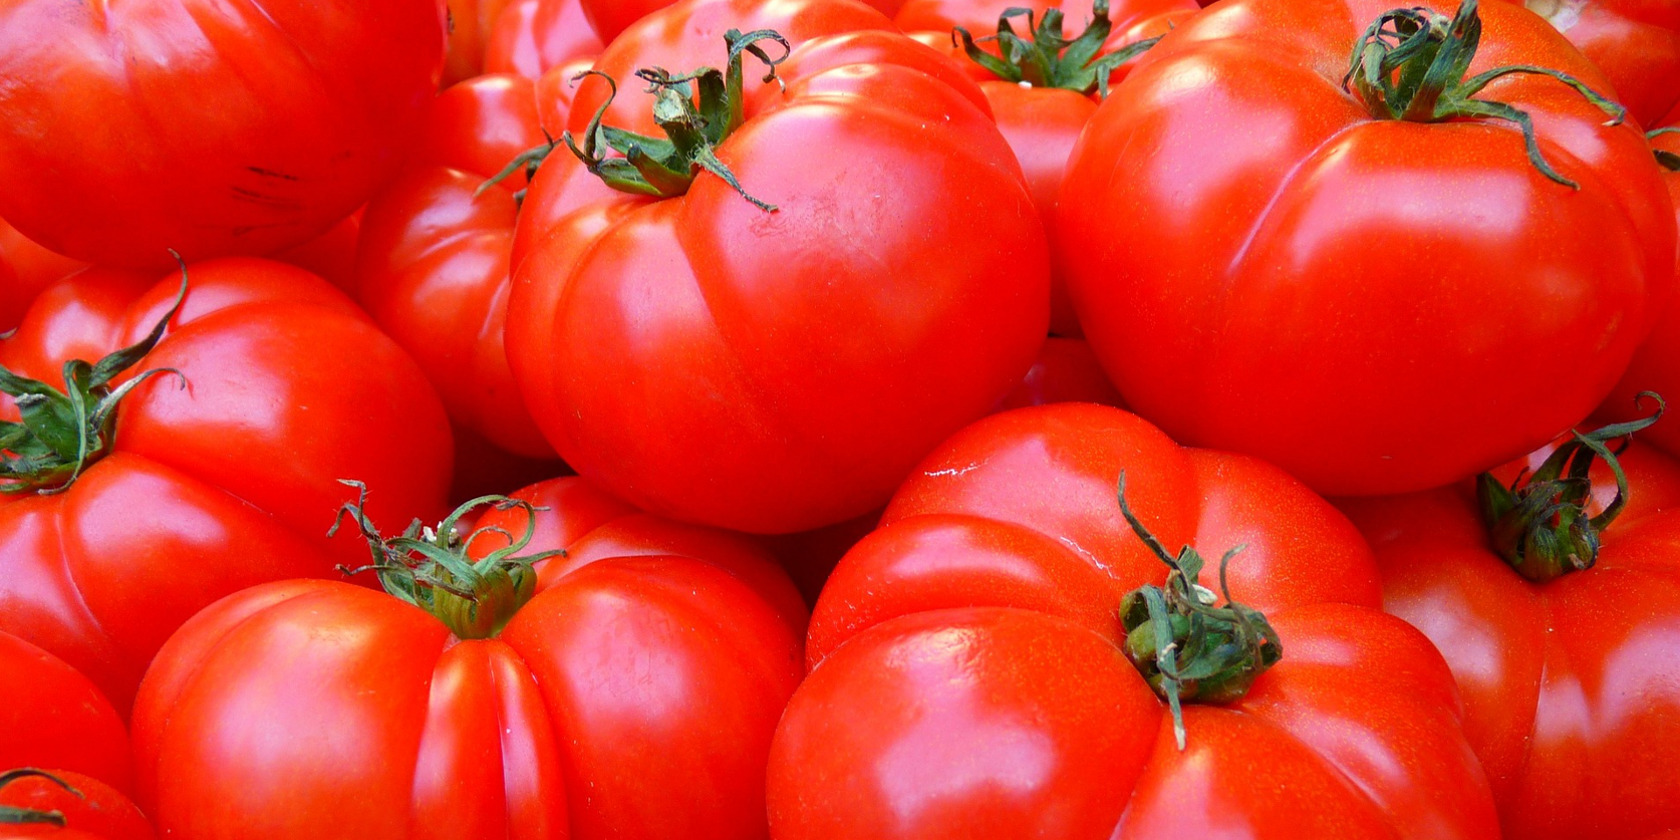 Osaka Prefecture University Uses Special Film to Increase Lycopene in Tomatoes